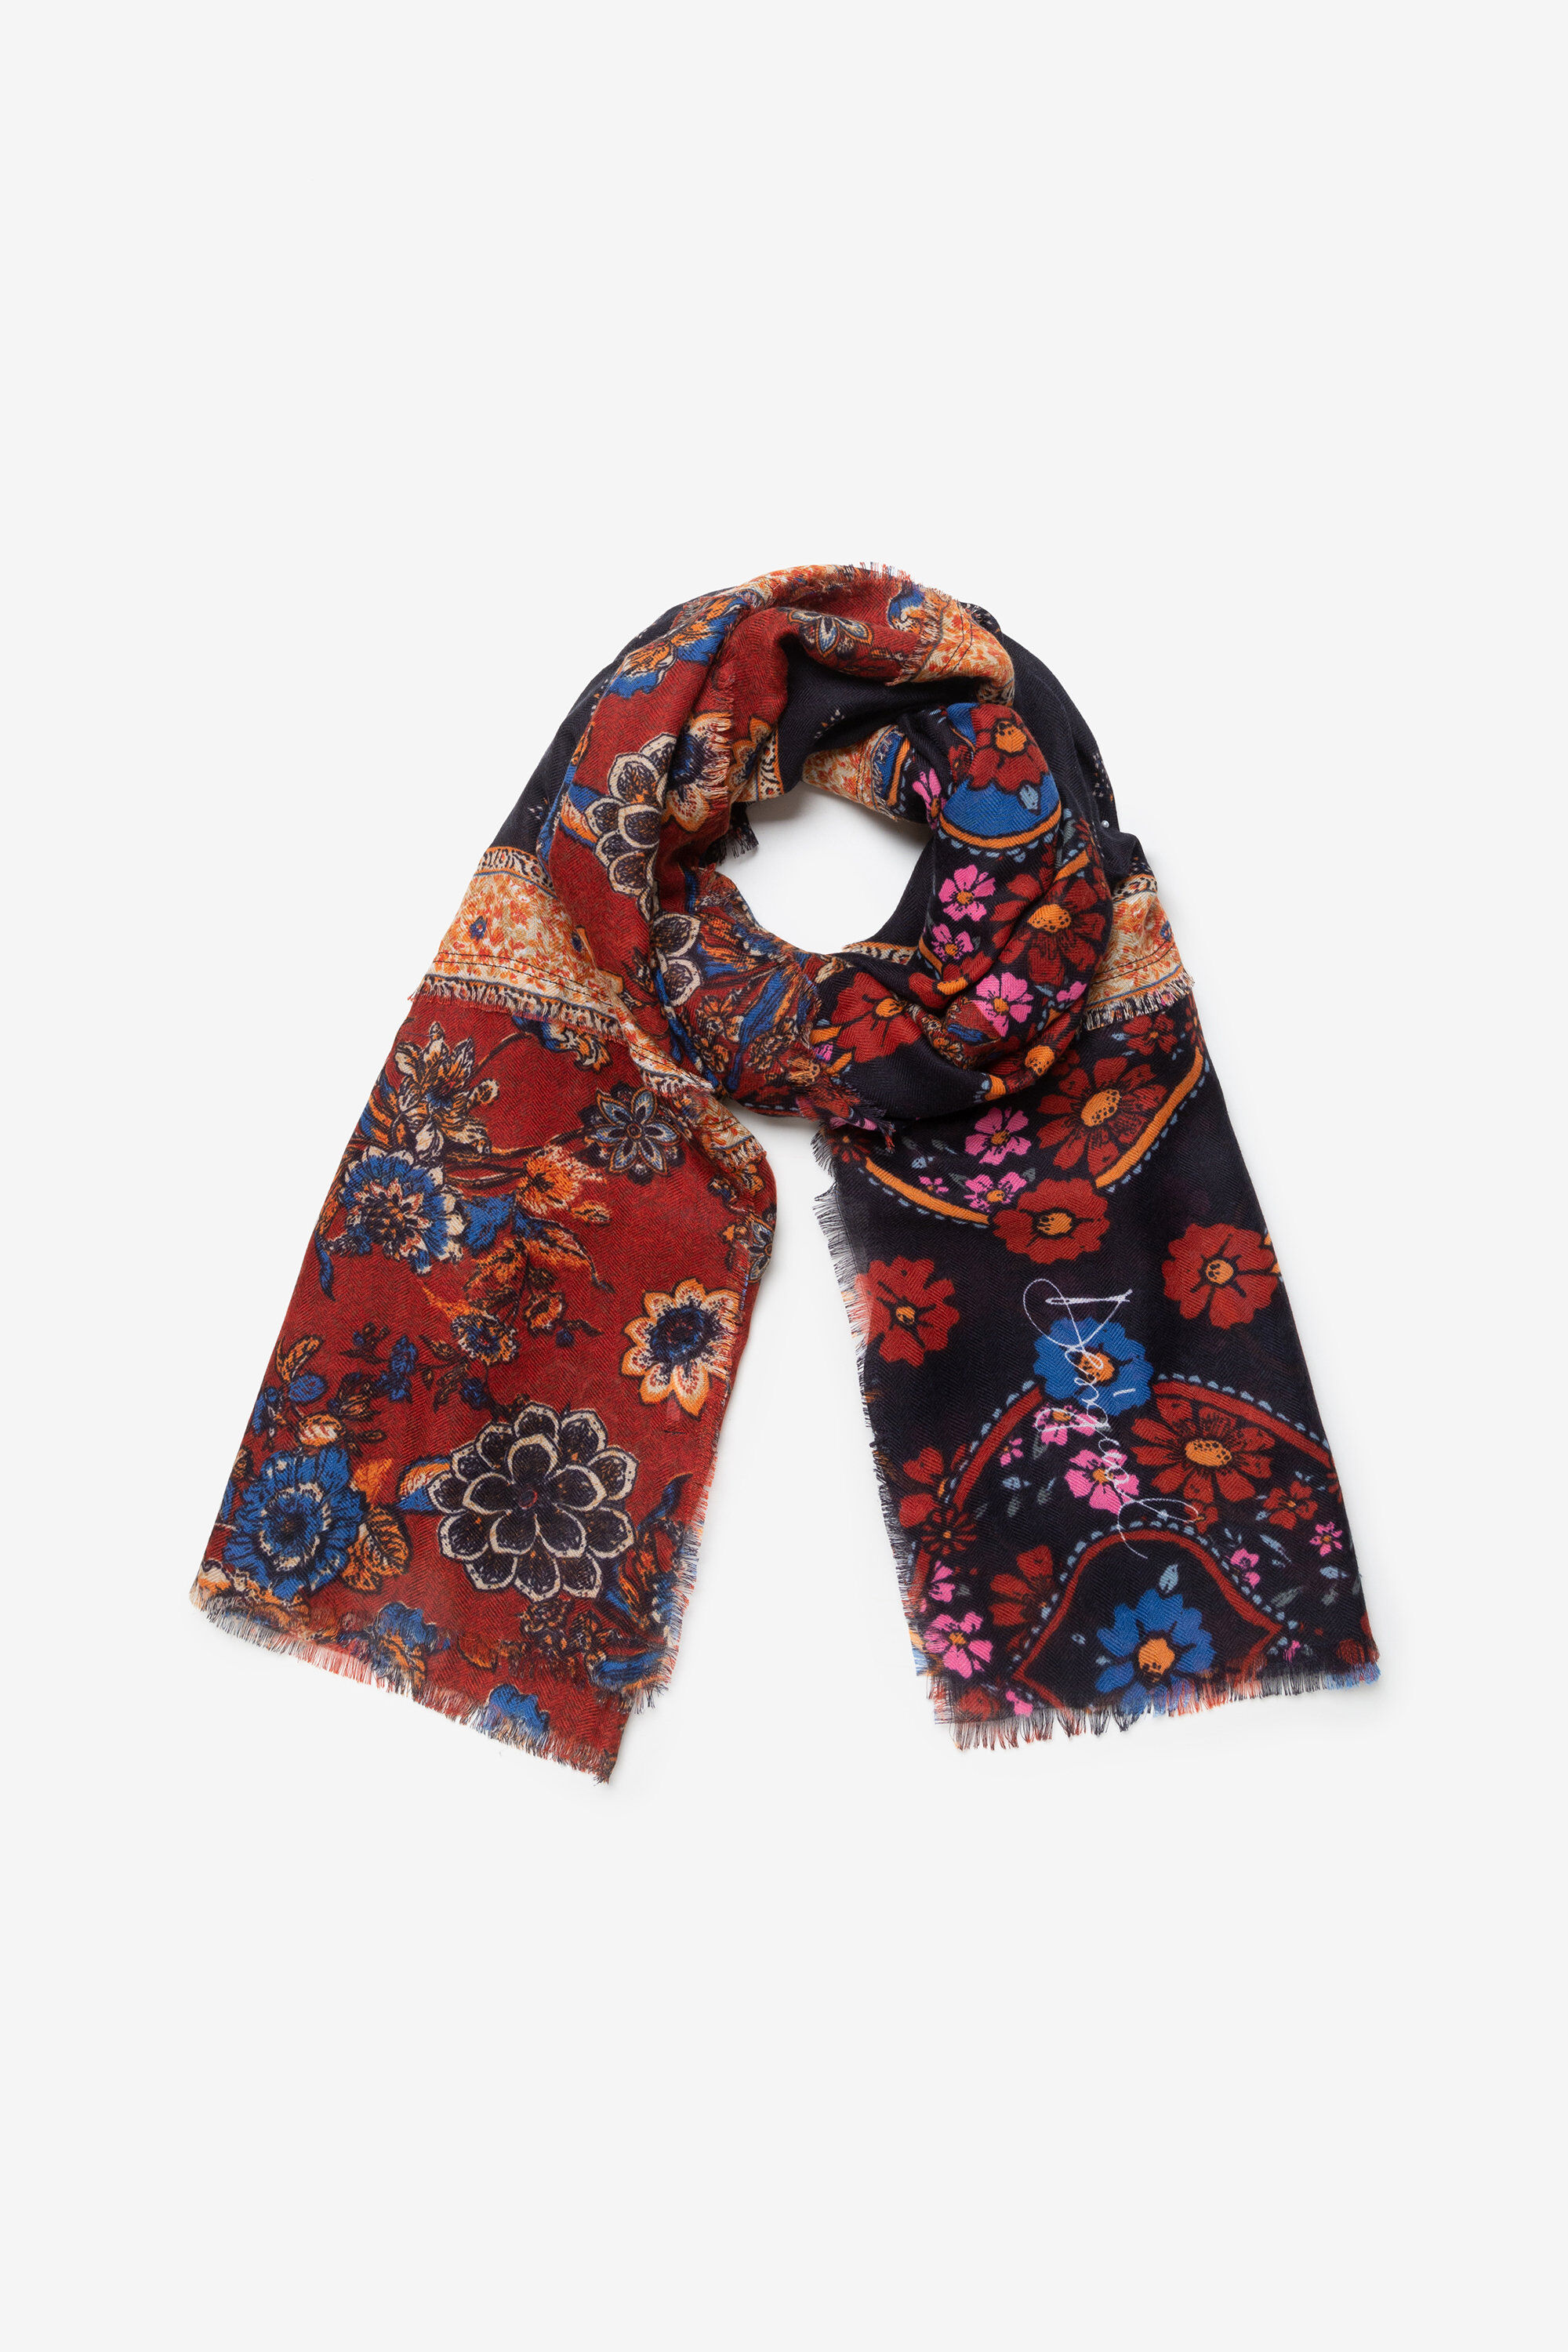 Foulard rectangulaire bohème automnal - ORANGE - U